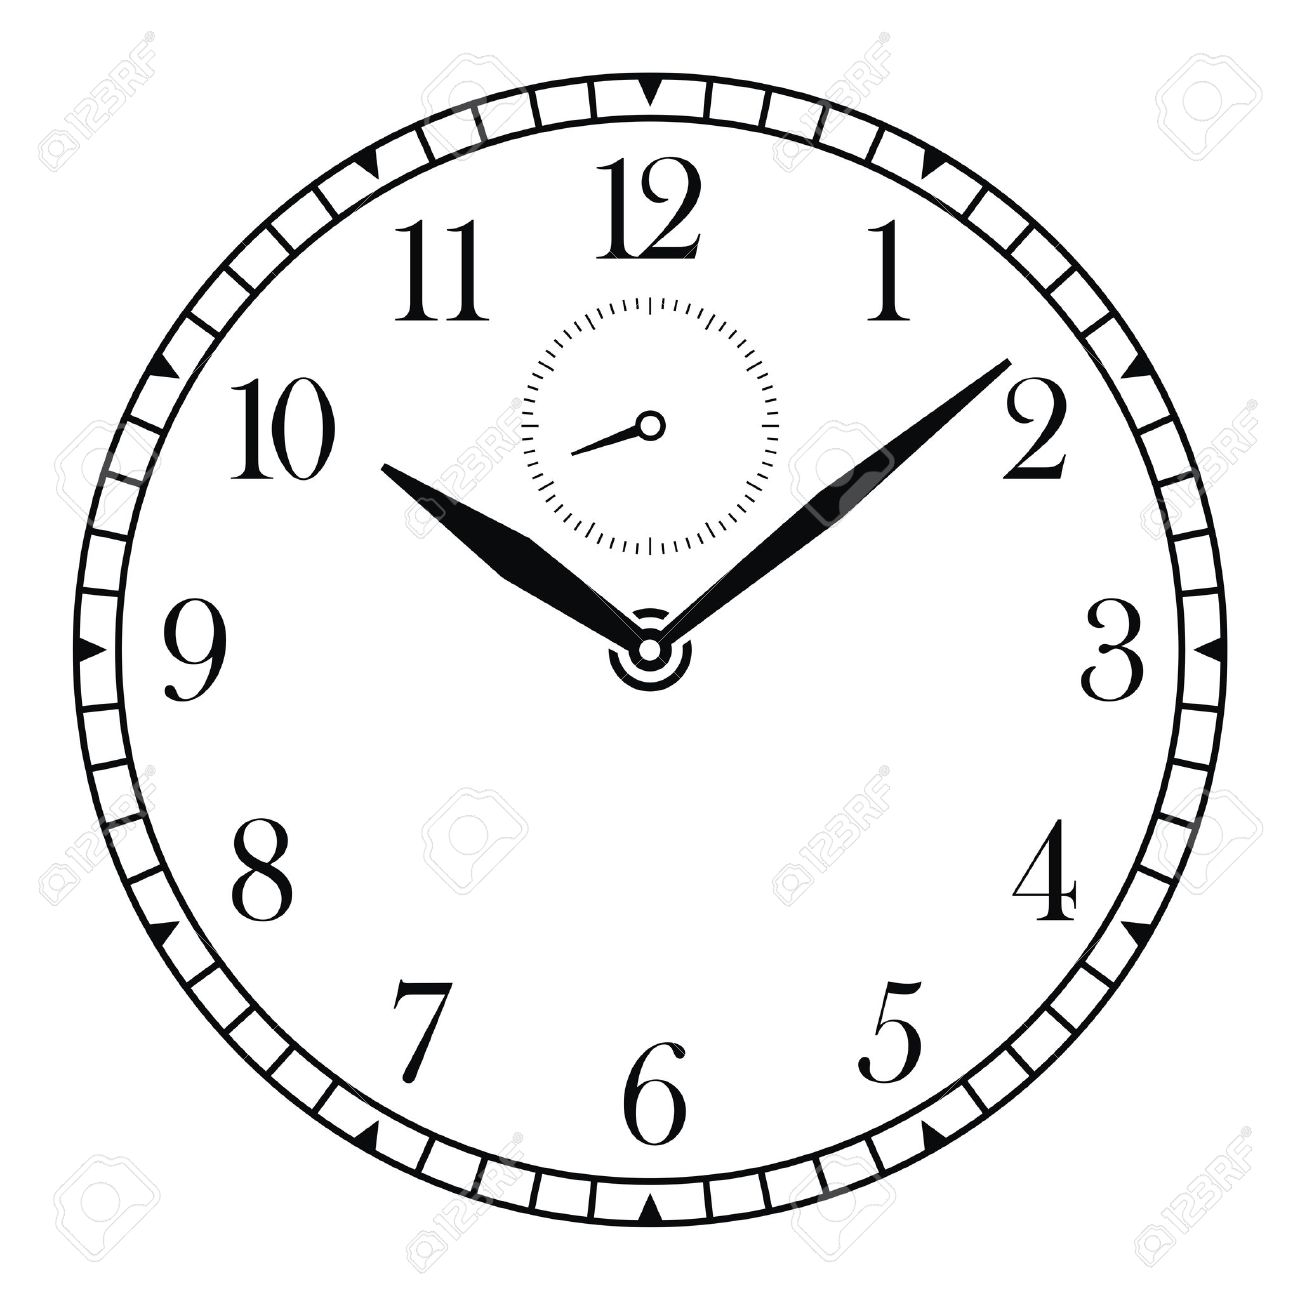 vector clock face and hands royalty free cliparts, vectors, and